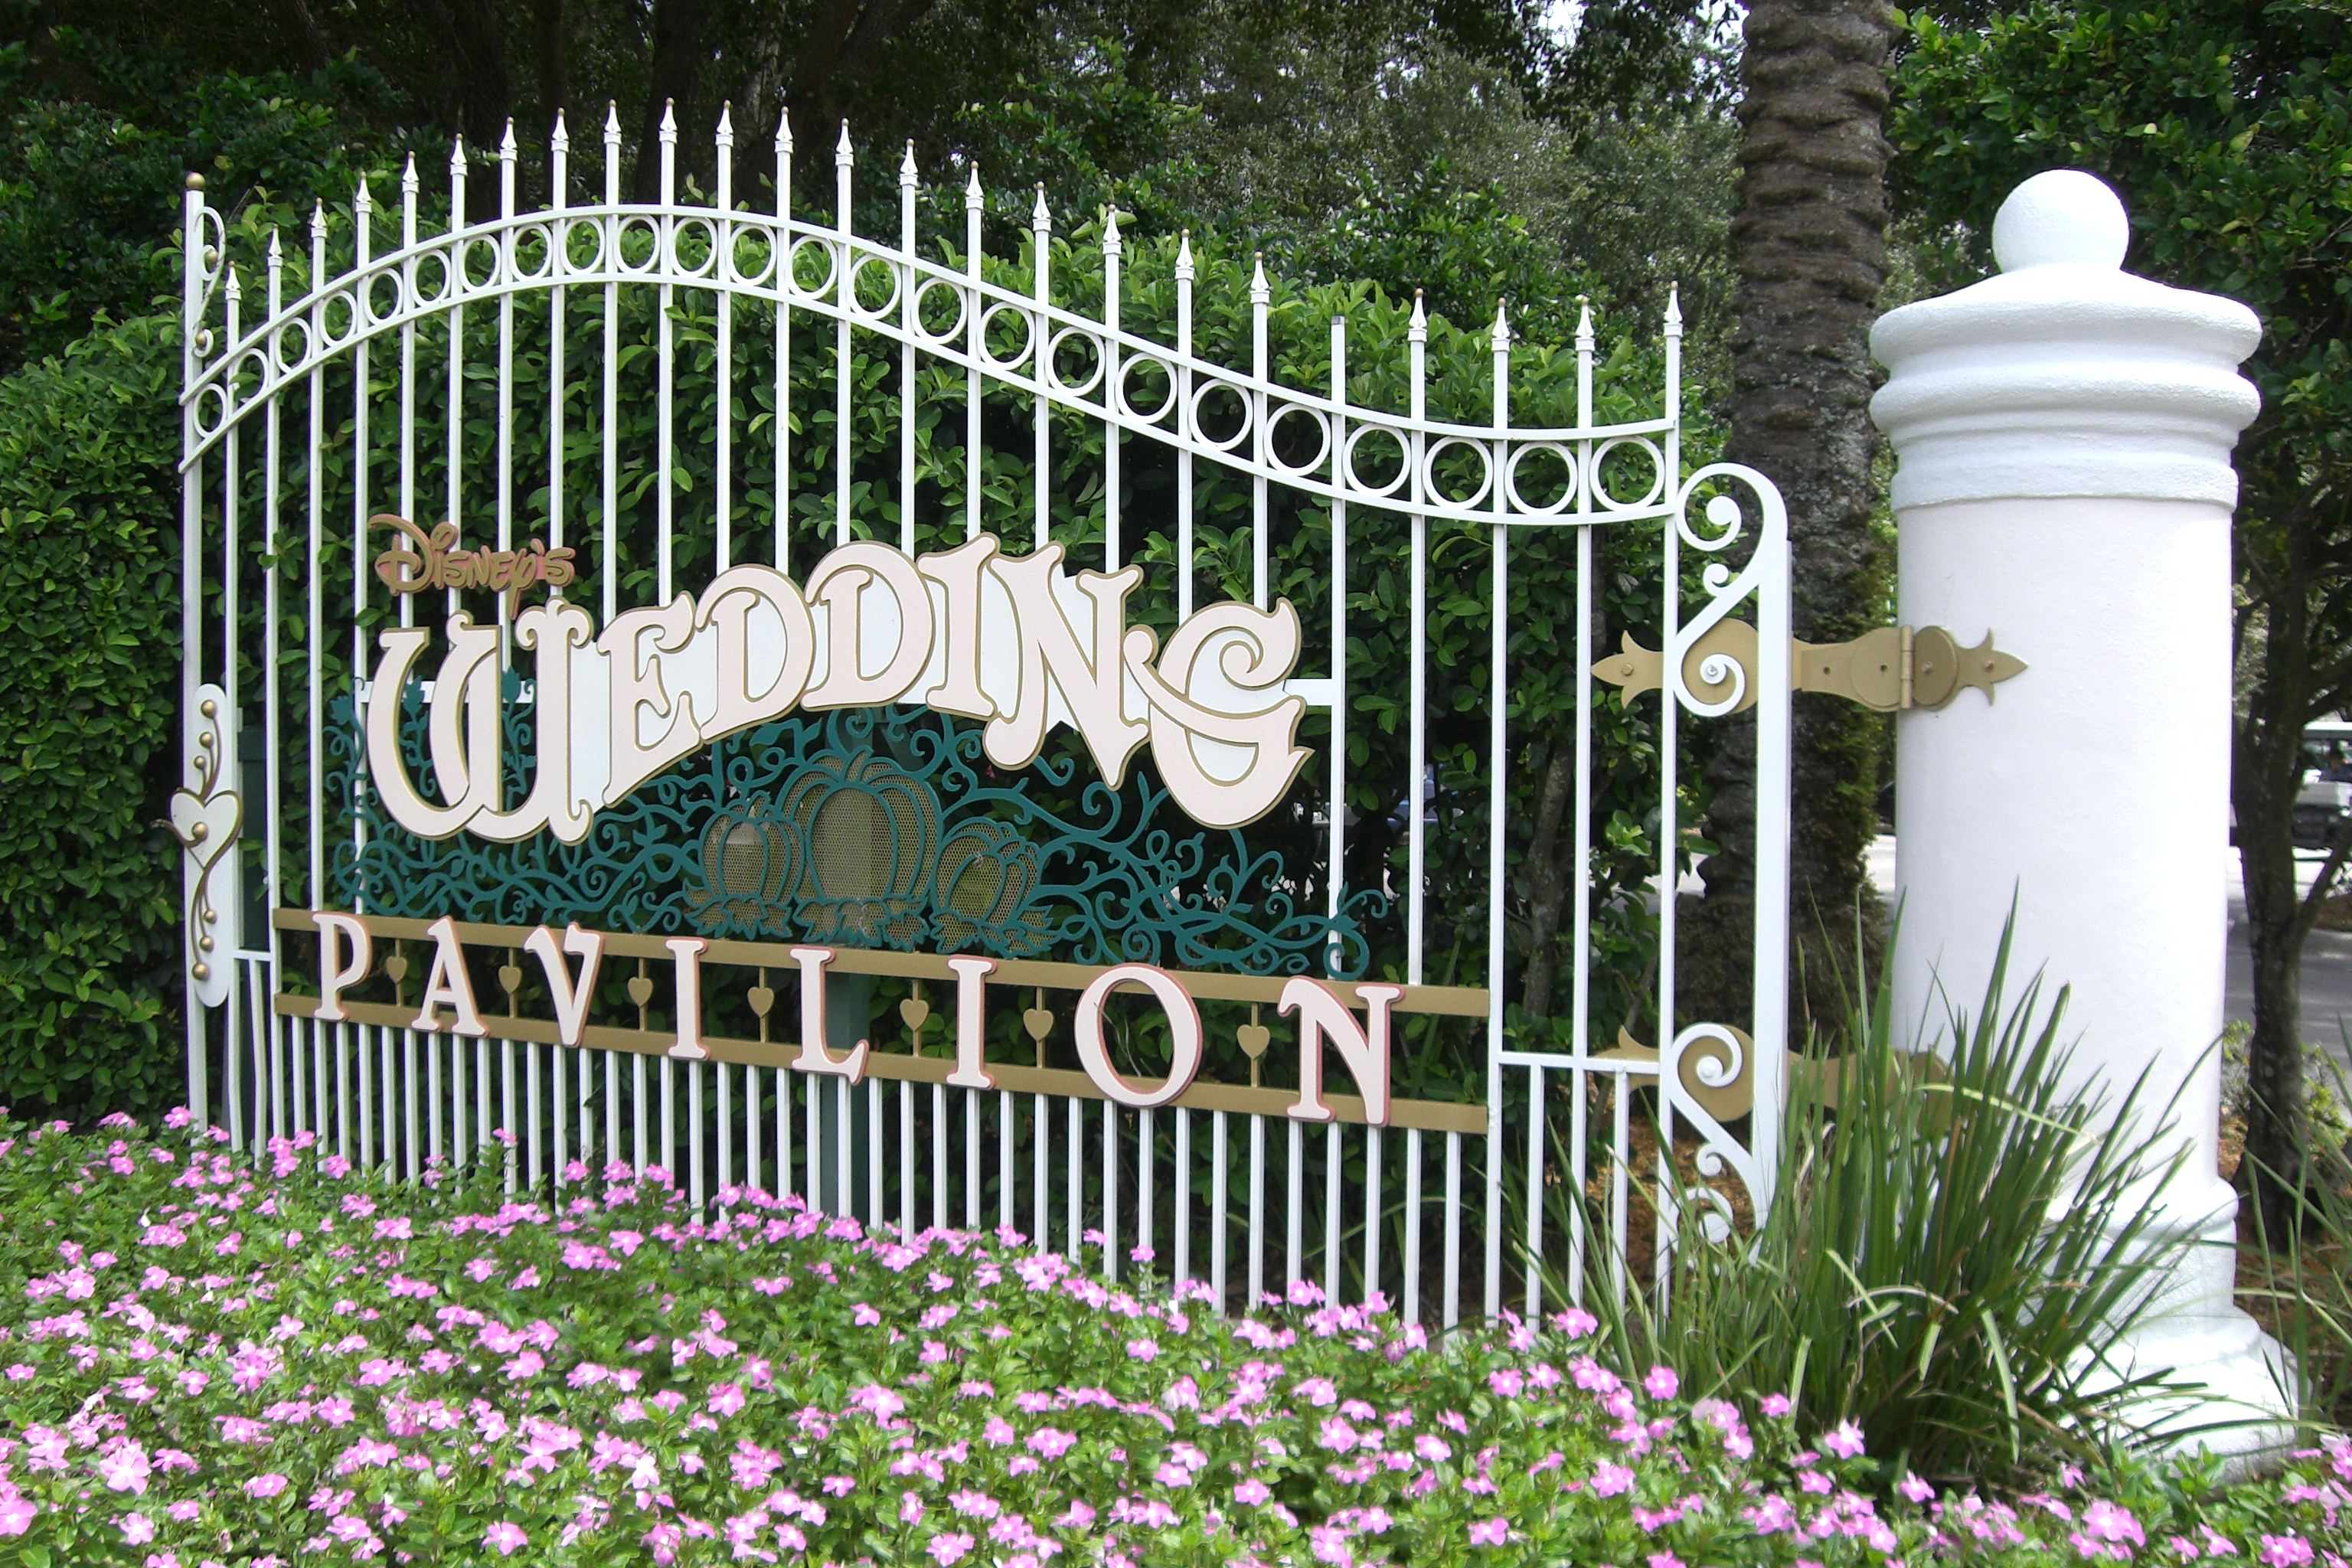 Disneys Wedding Pavilion Is On Its Own Island And Provides A Perfect Indoor Ceremony Site Not To Mention The